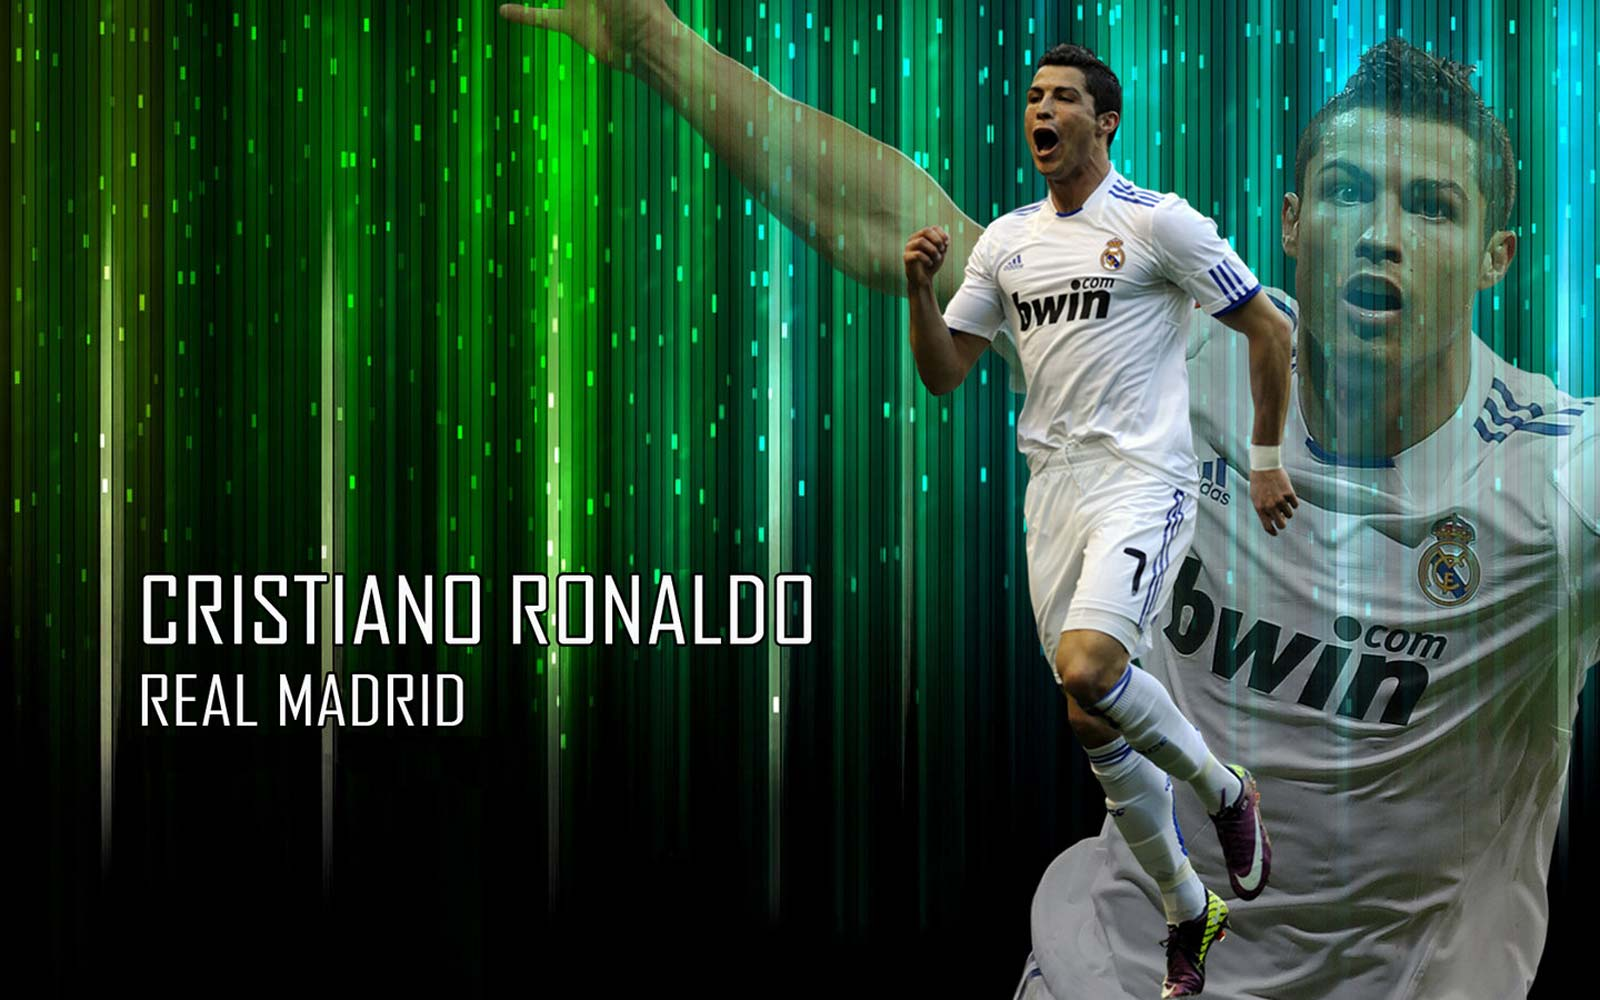 All Wallpapers Cristiano Ronaldo hd Wallpapers 2012 1600x1000